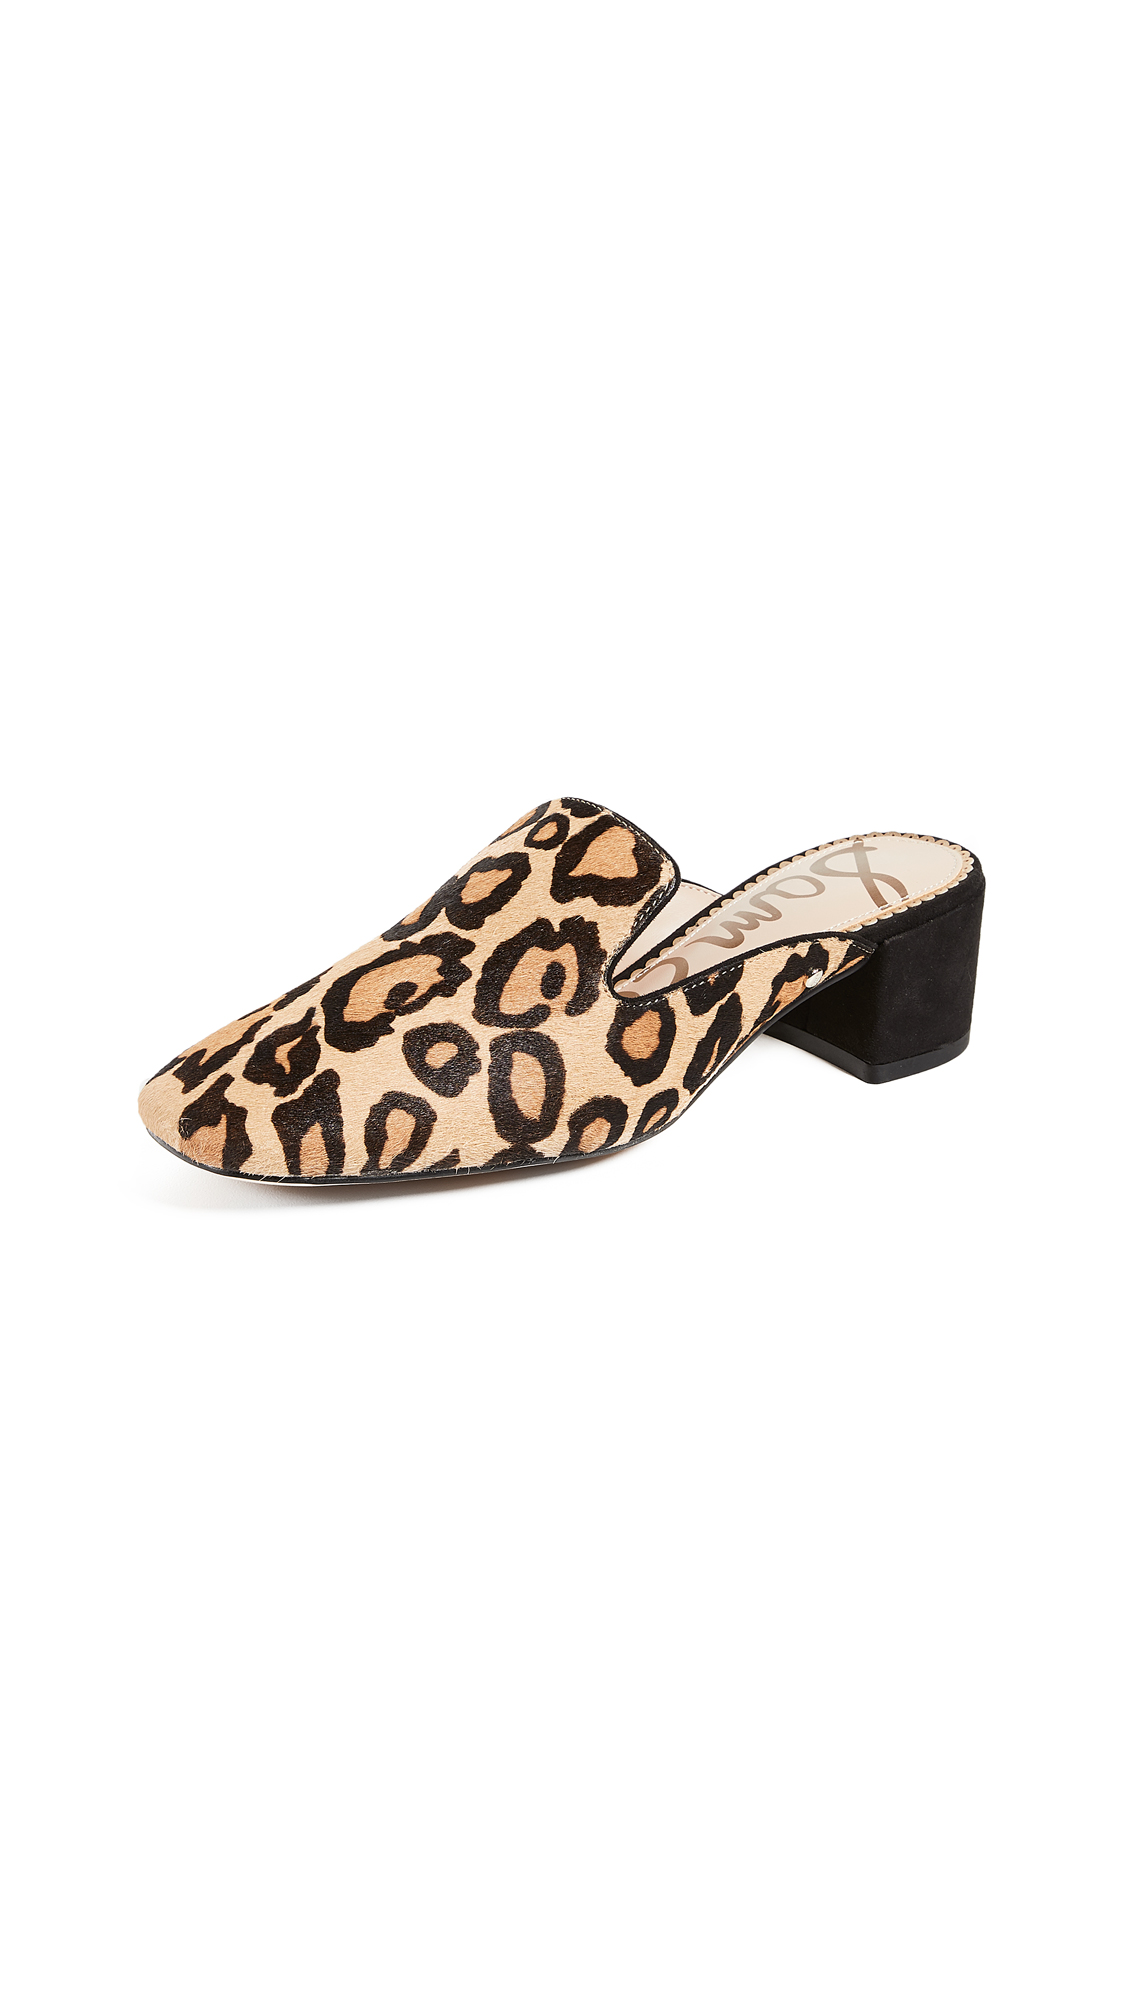 Sam Edelman Adair Mule Loafers - New Nude Leopard